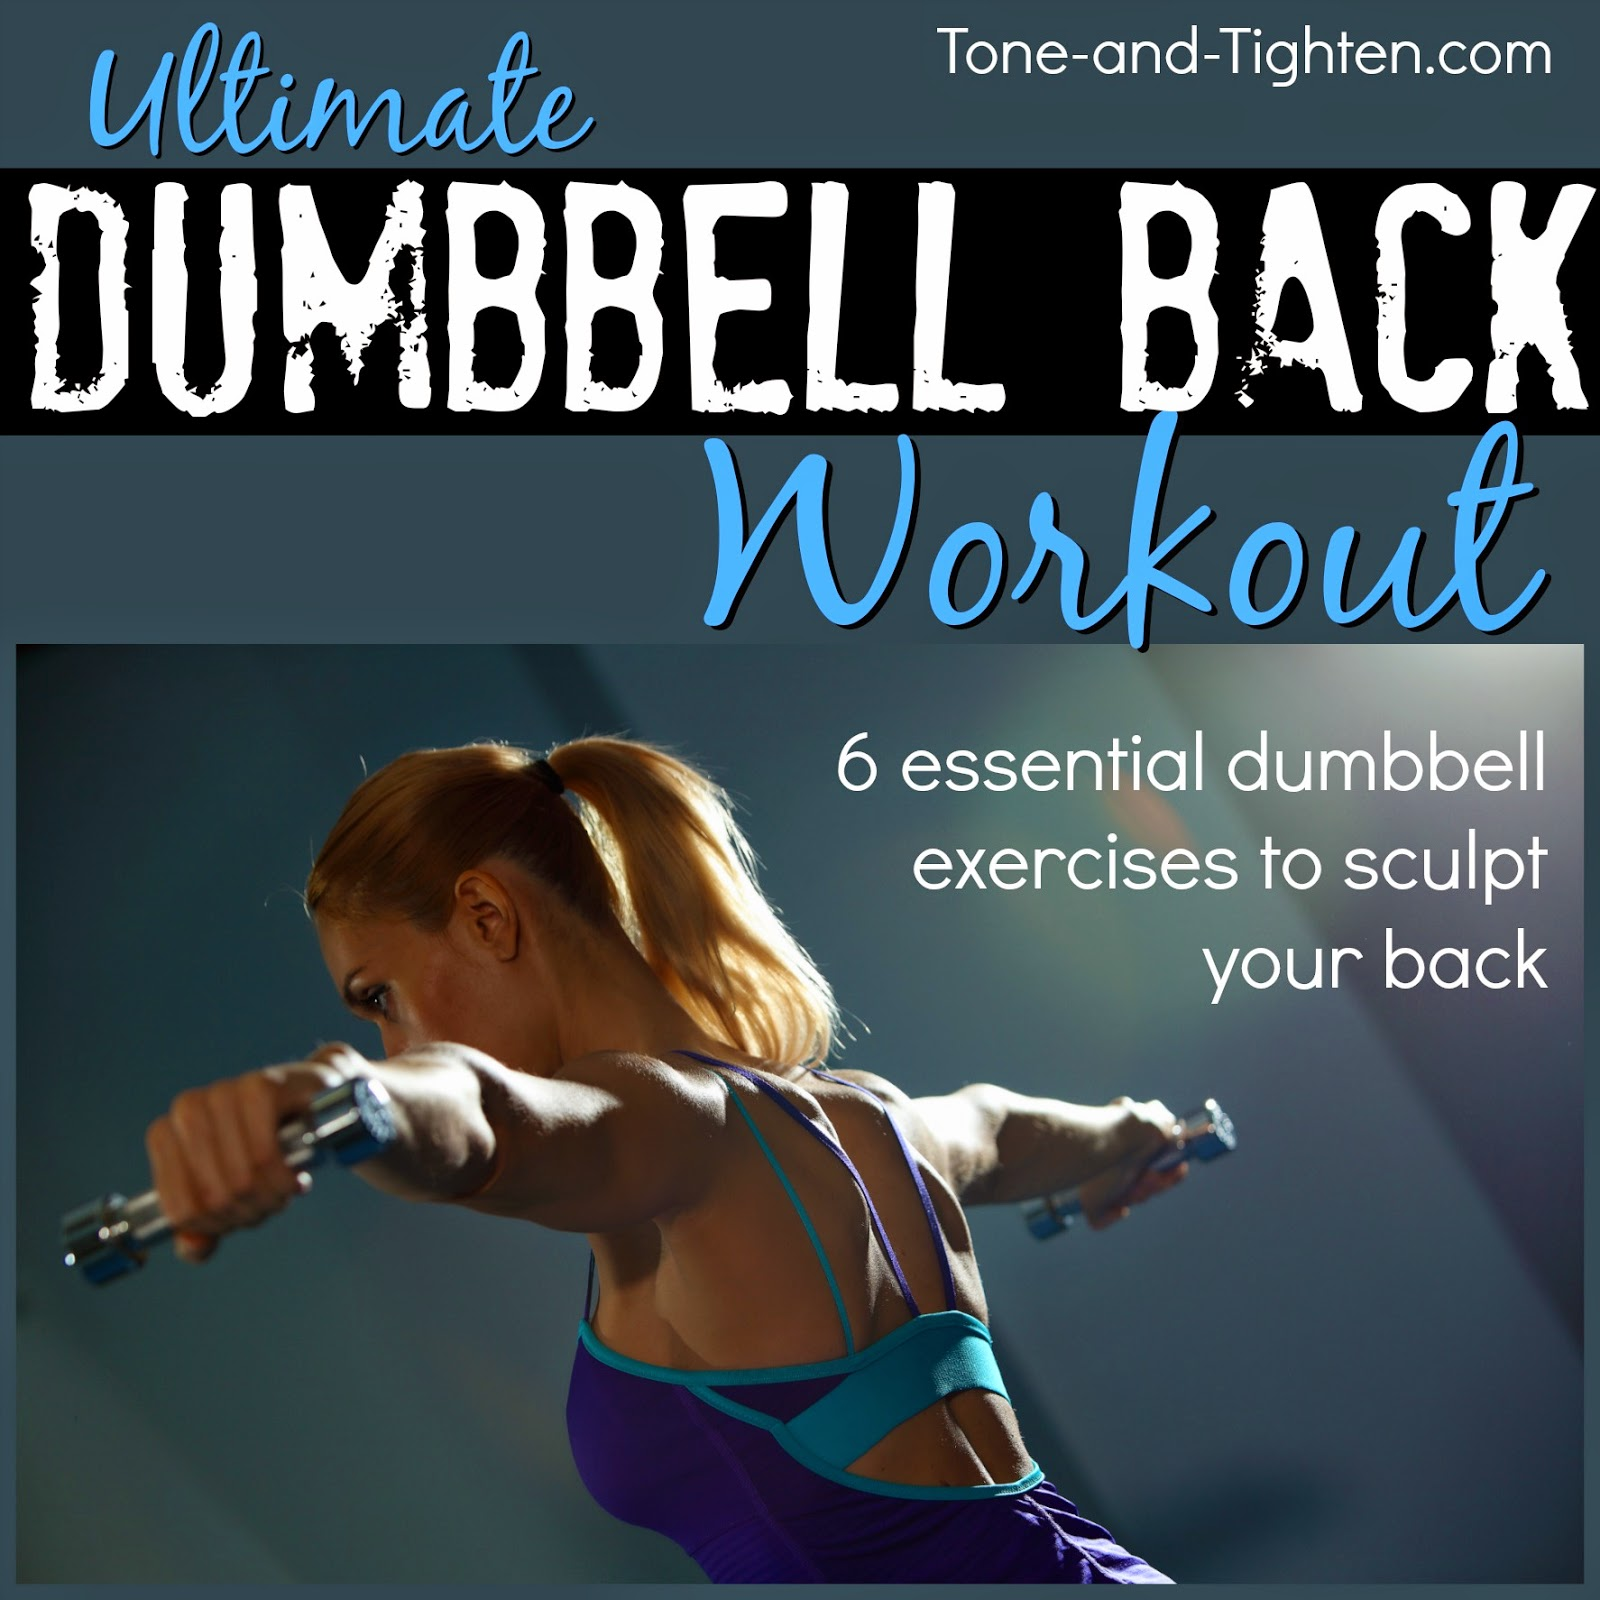 Dumbbell Back Workout Best Exercises For Your